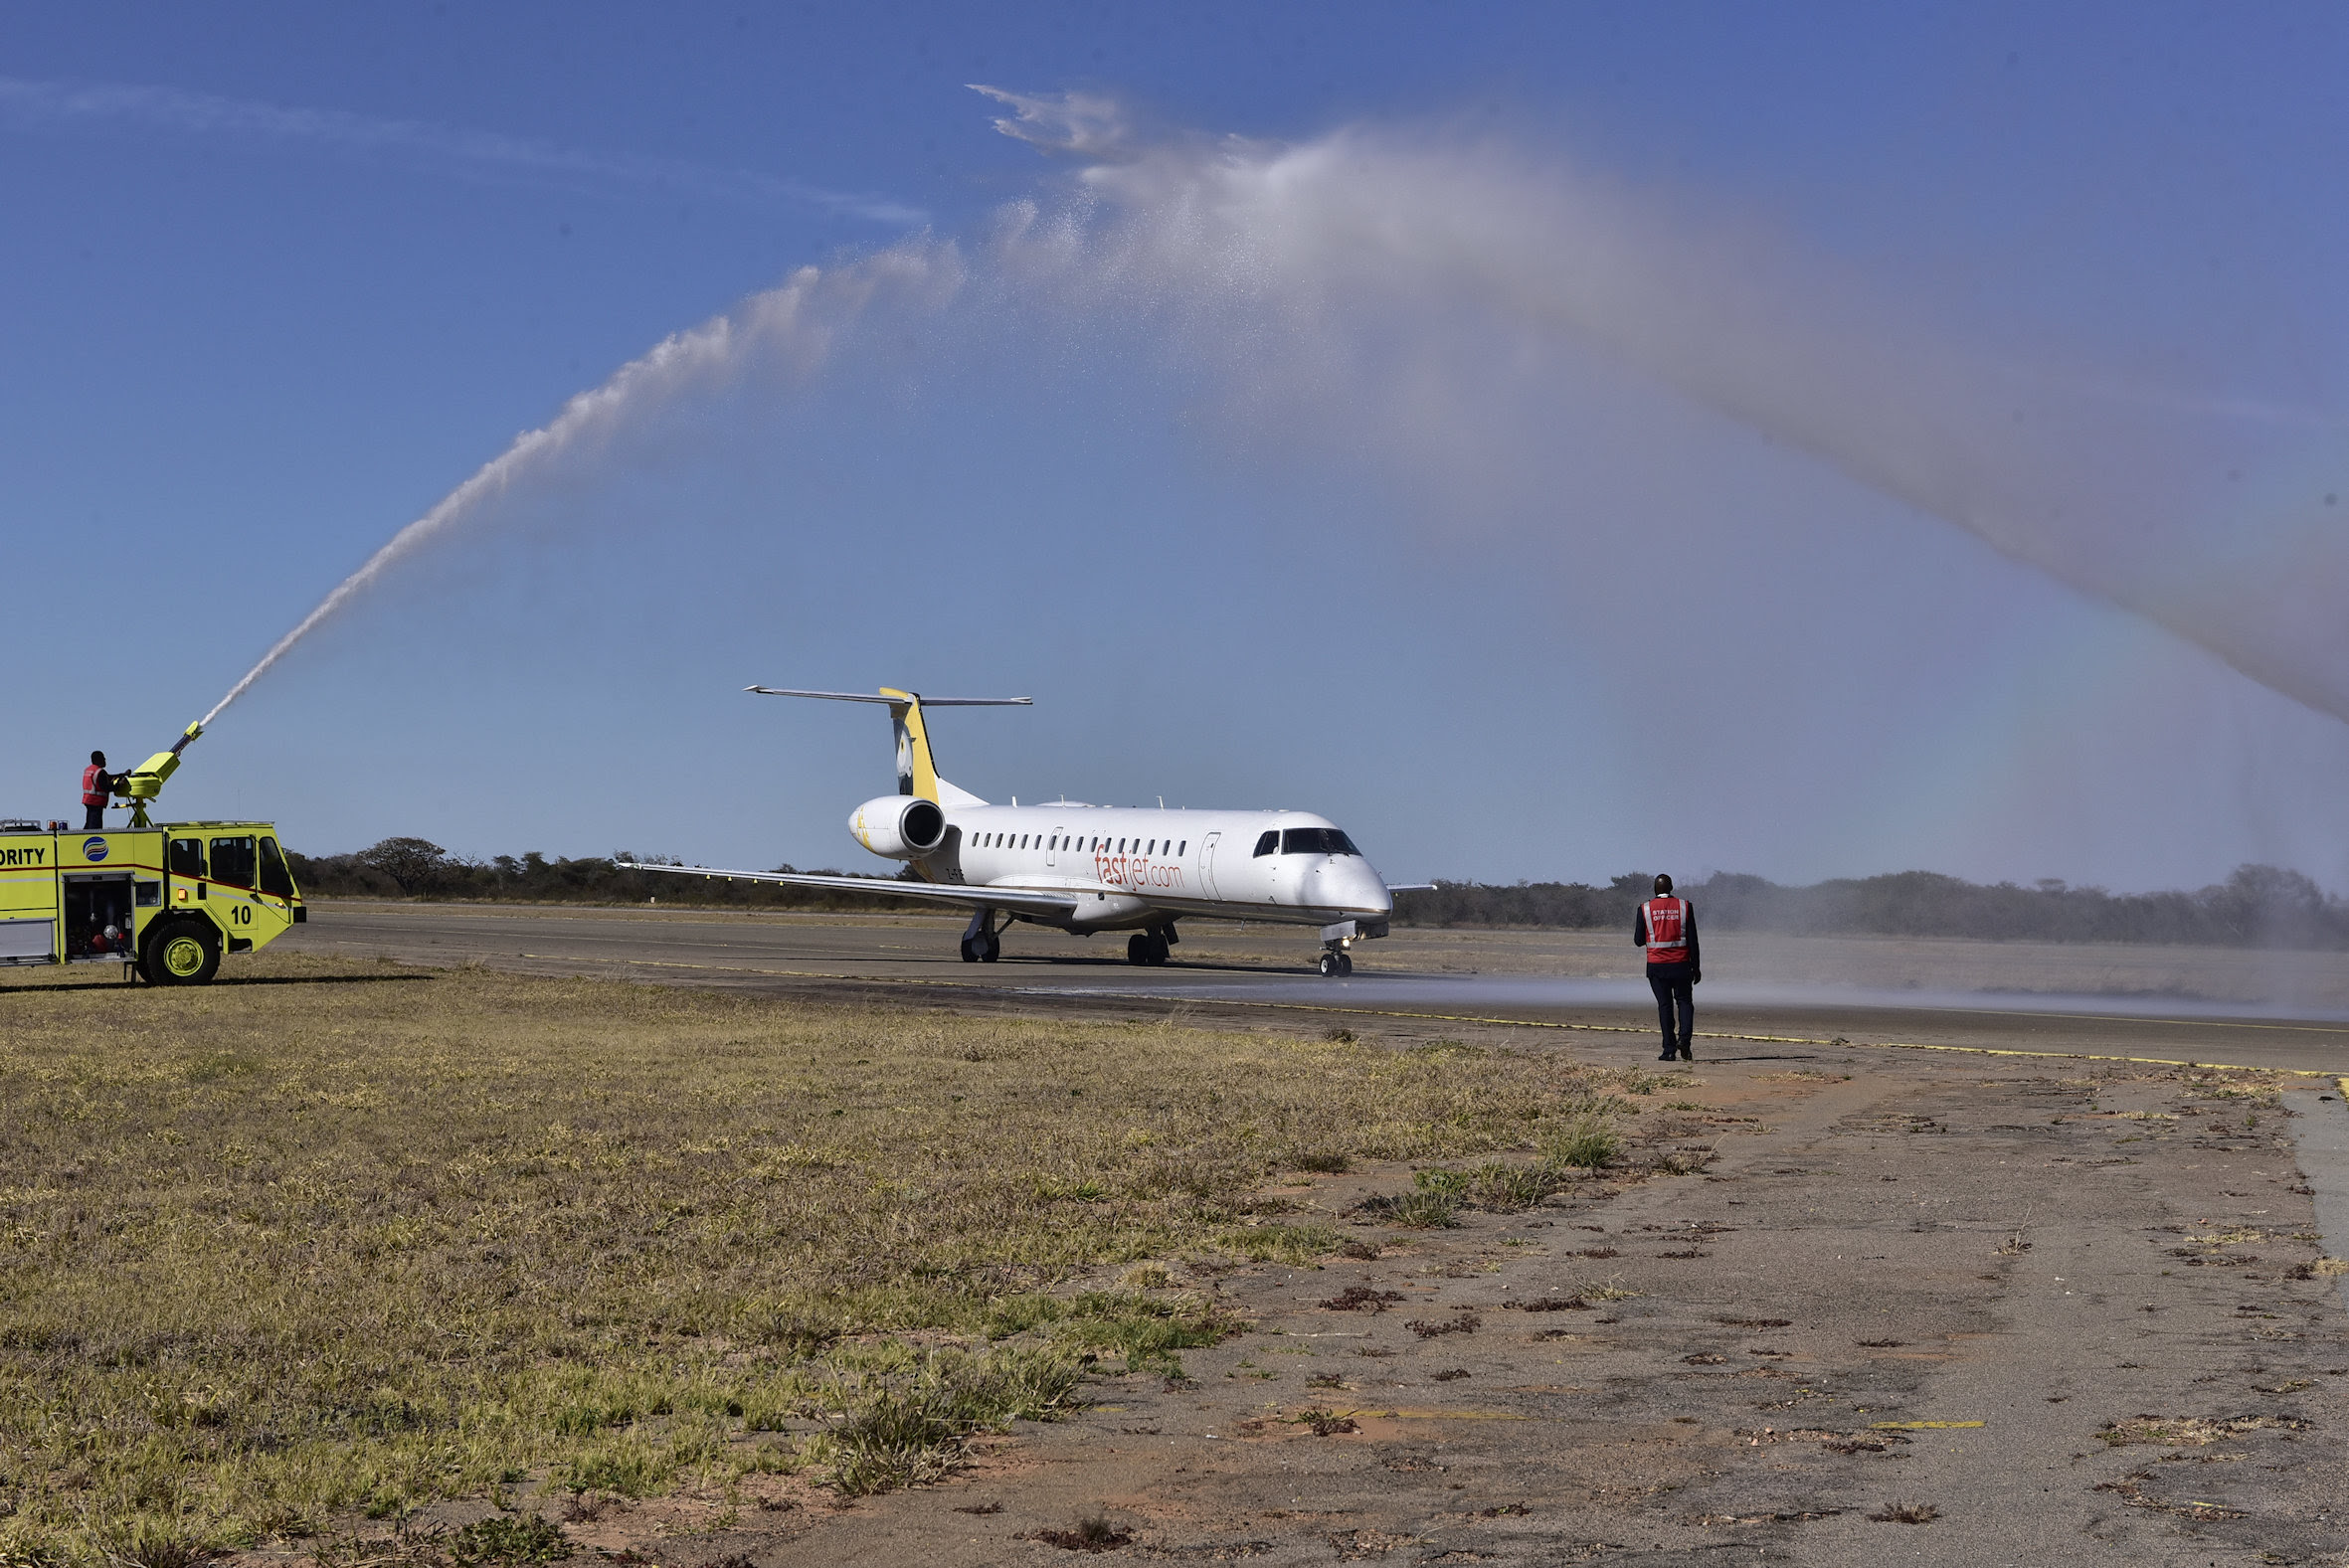 fastjet pledges to help revive Bulawayo